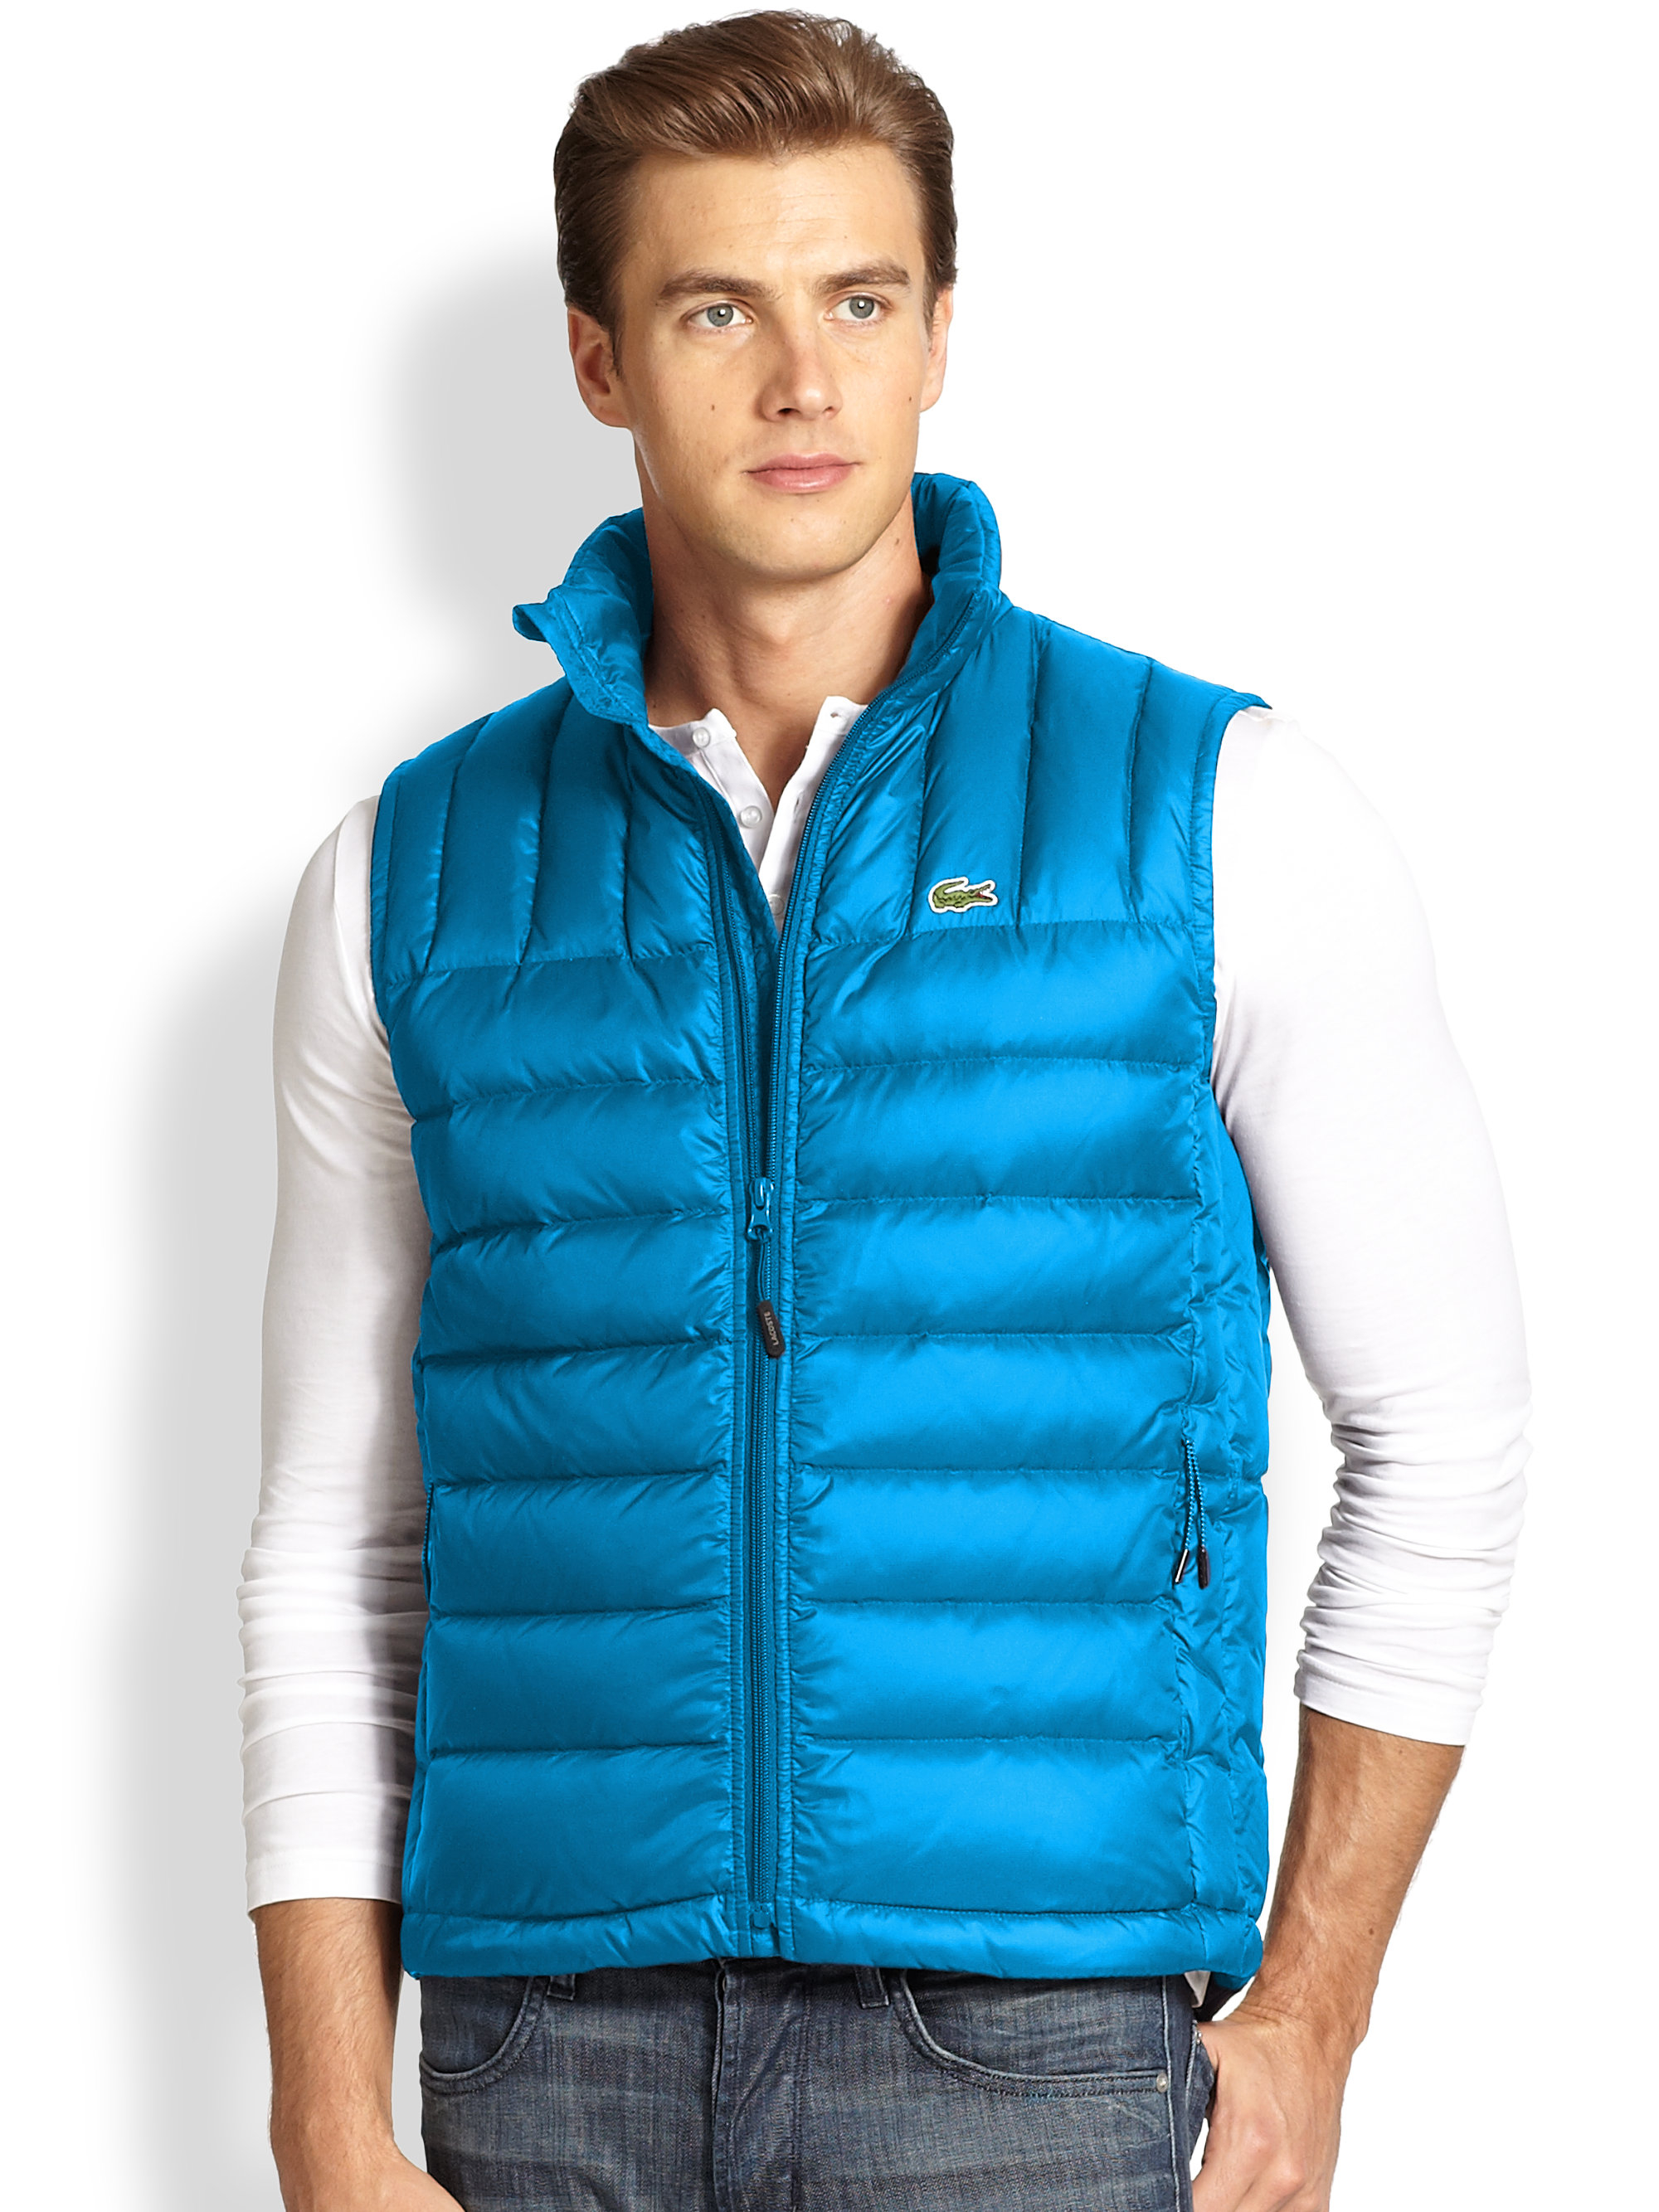 Find great deals on eBay for packable down vest. Shop with confidence.